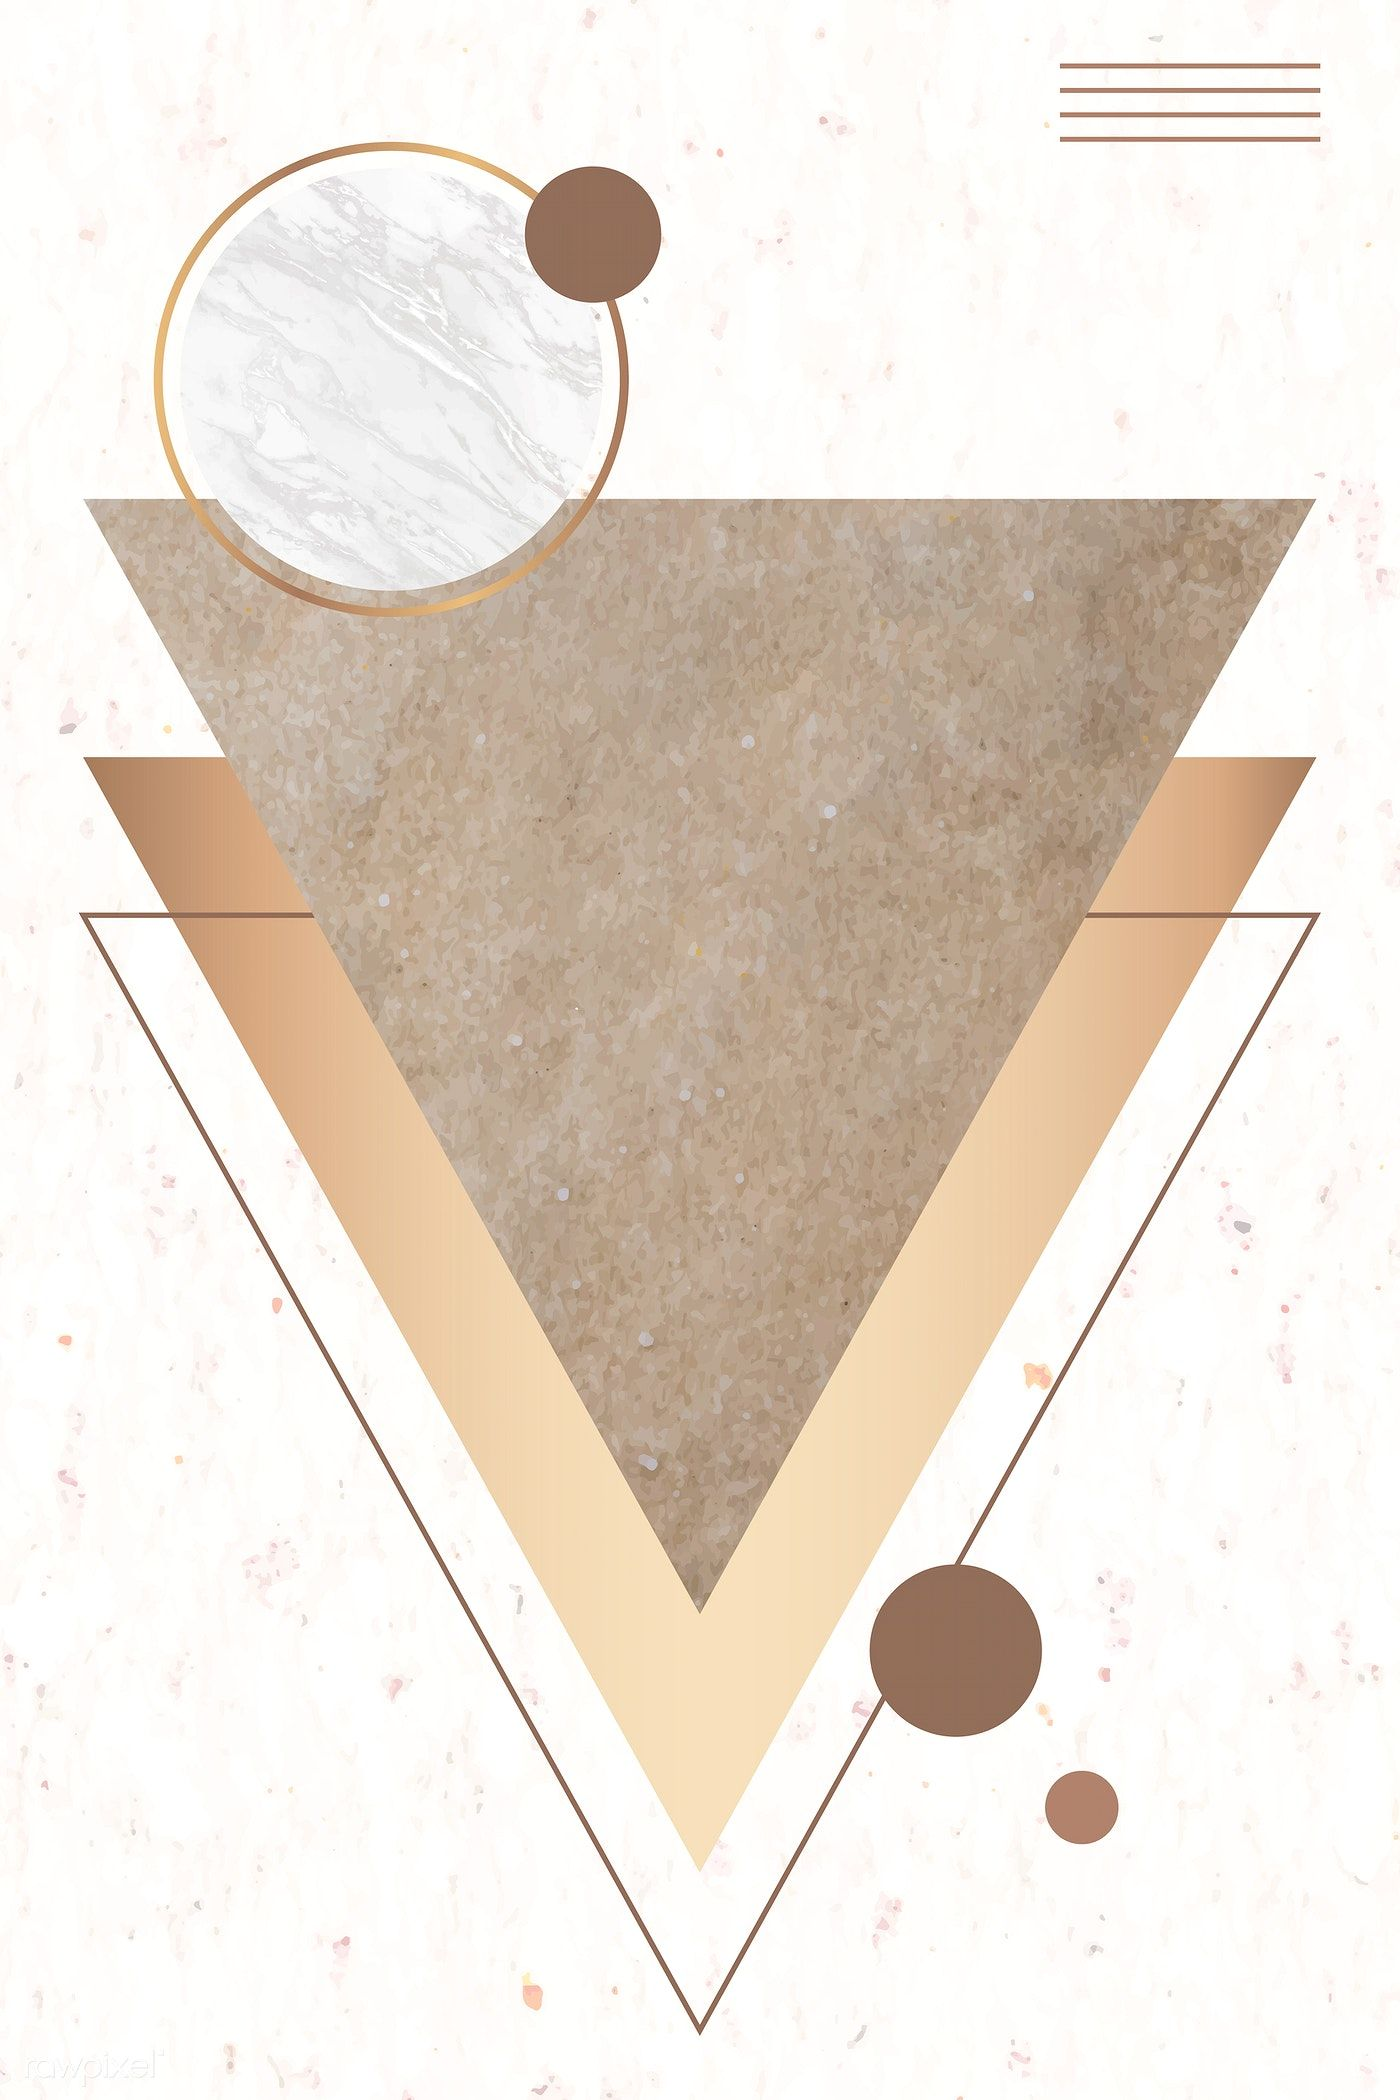 Rectangle Gold Frame On White Marble Background Vector Premium Image By Rawpixel Com Sasi In 2020 Marble Background White Marble Background Marble Frame